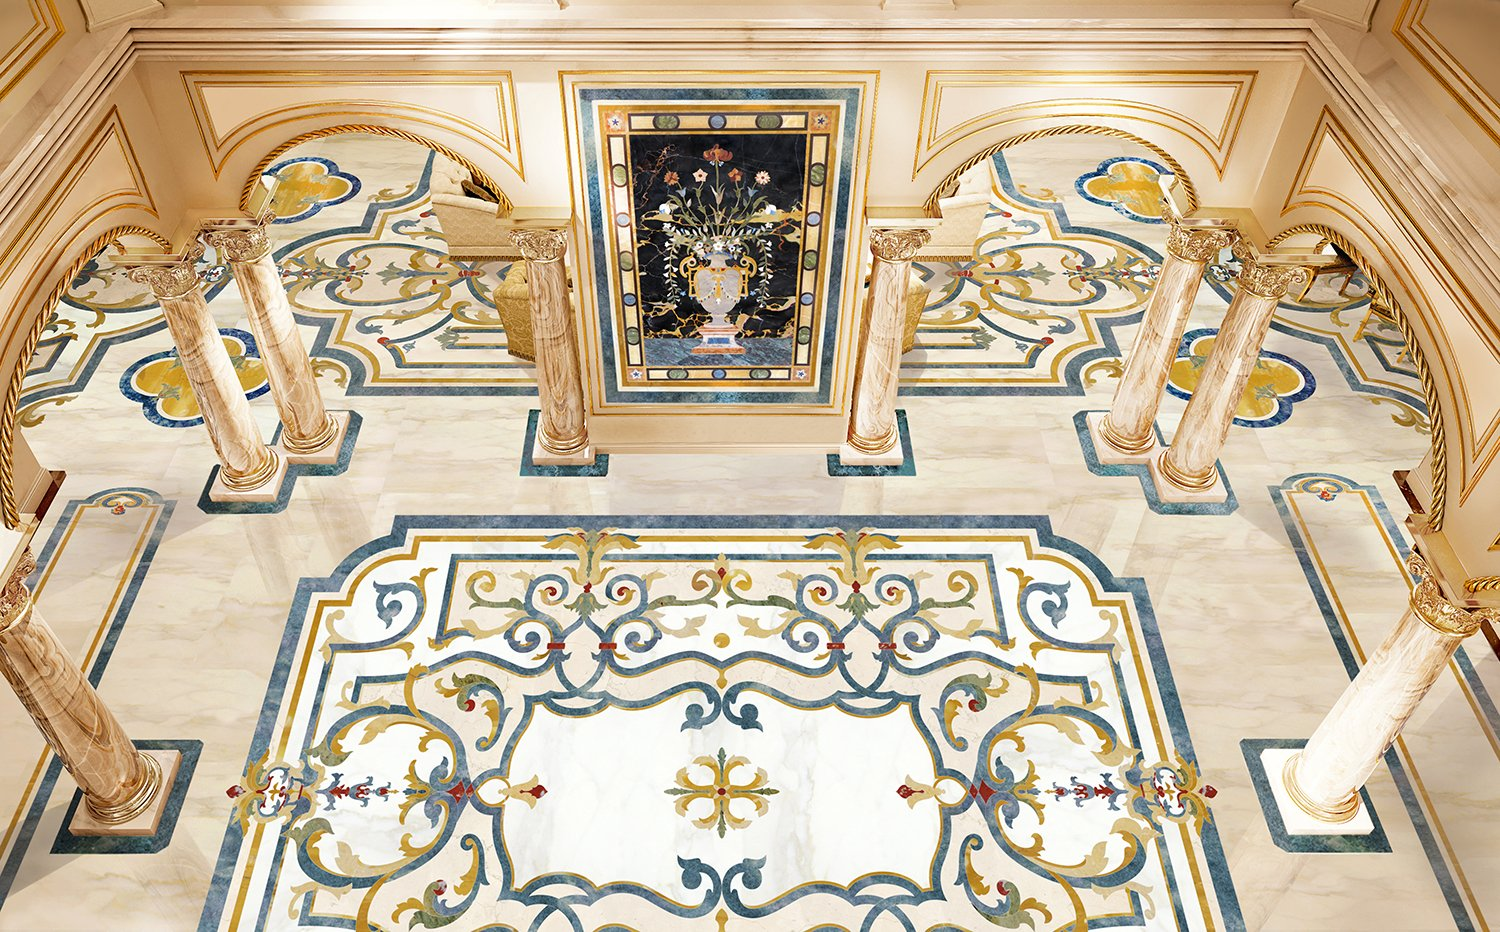 marble-inlay-floor-design-luxury-residence